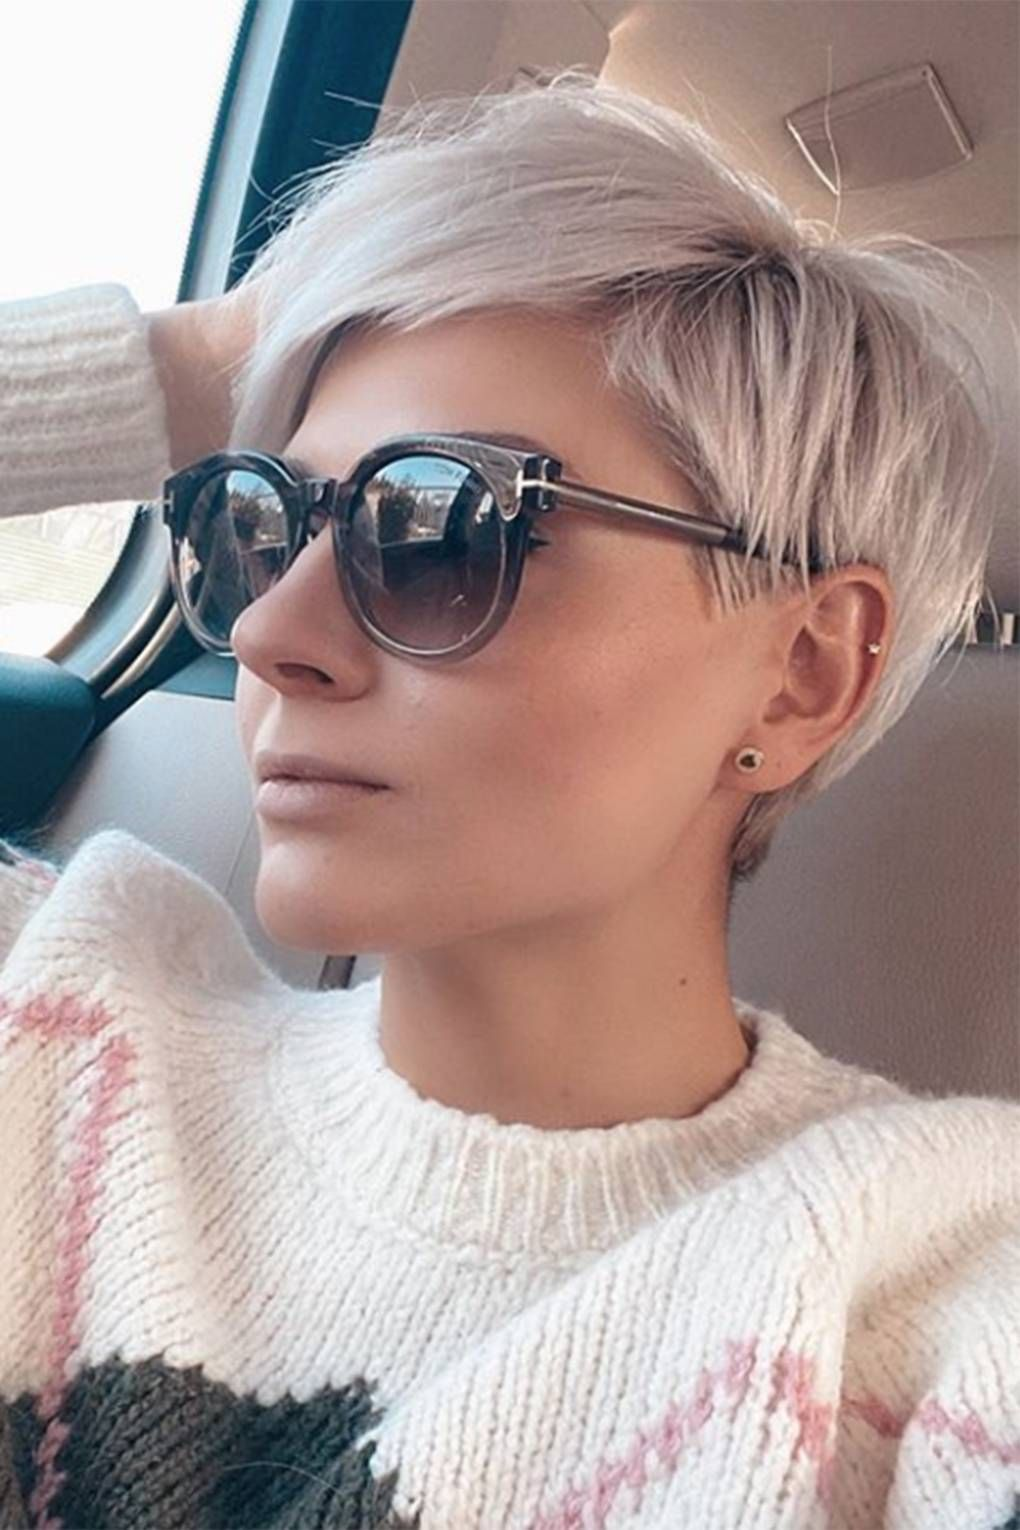 From The Shag to The Collarbone Cut: These are the